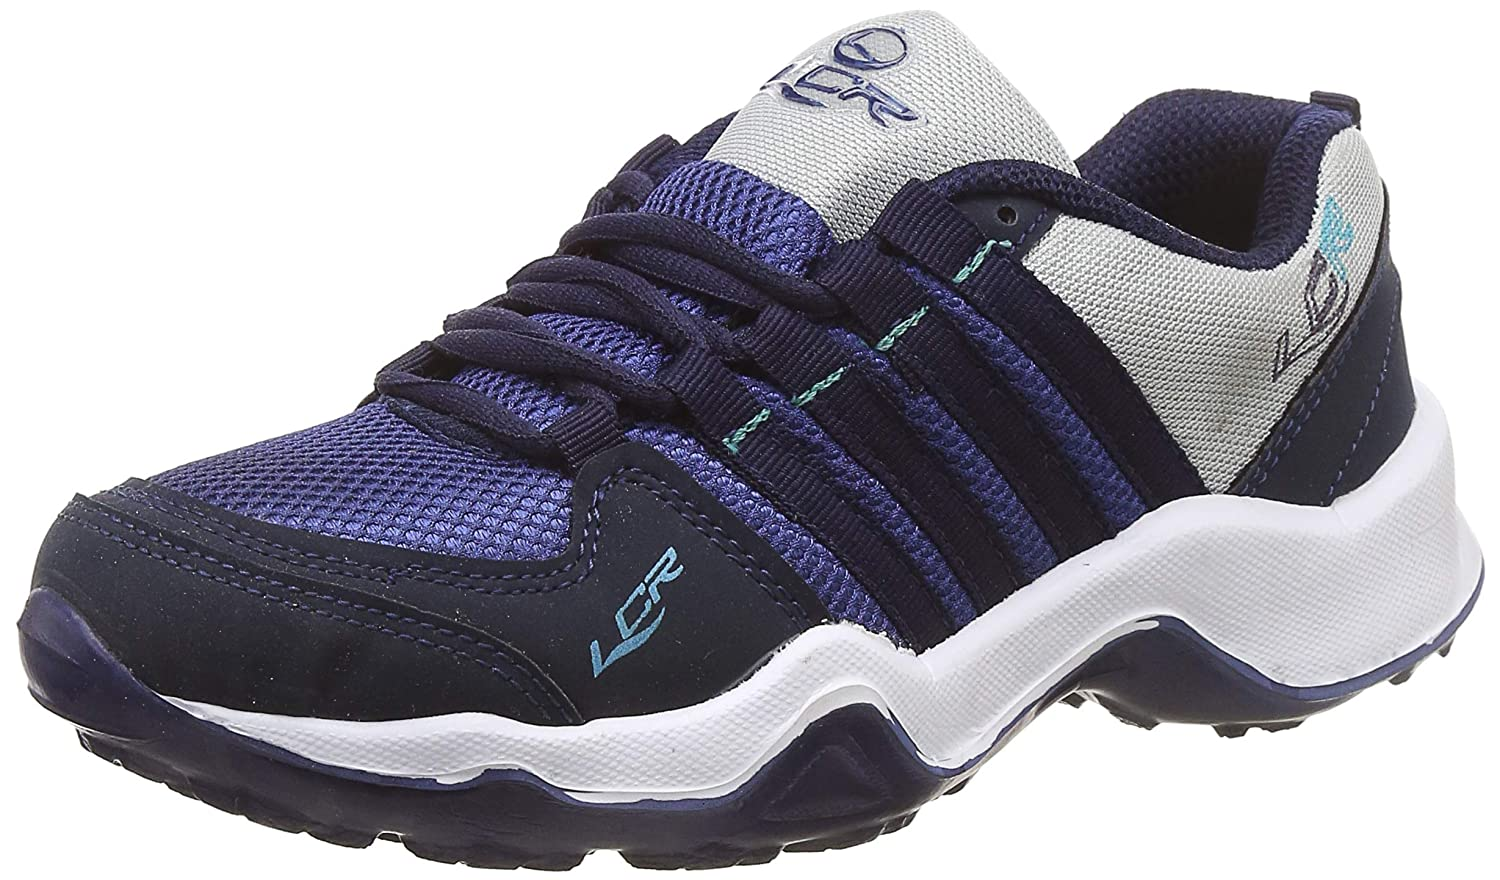 Buy Lancer Boy's Running Shoes at Amazon.in